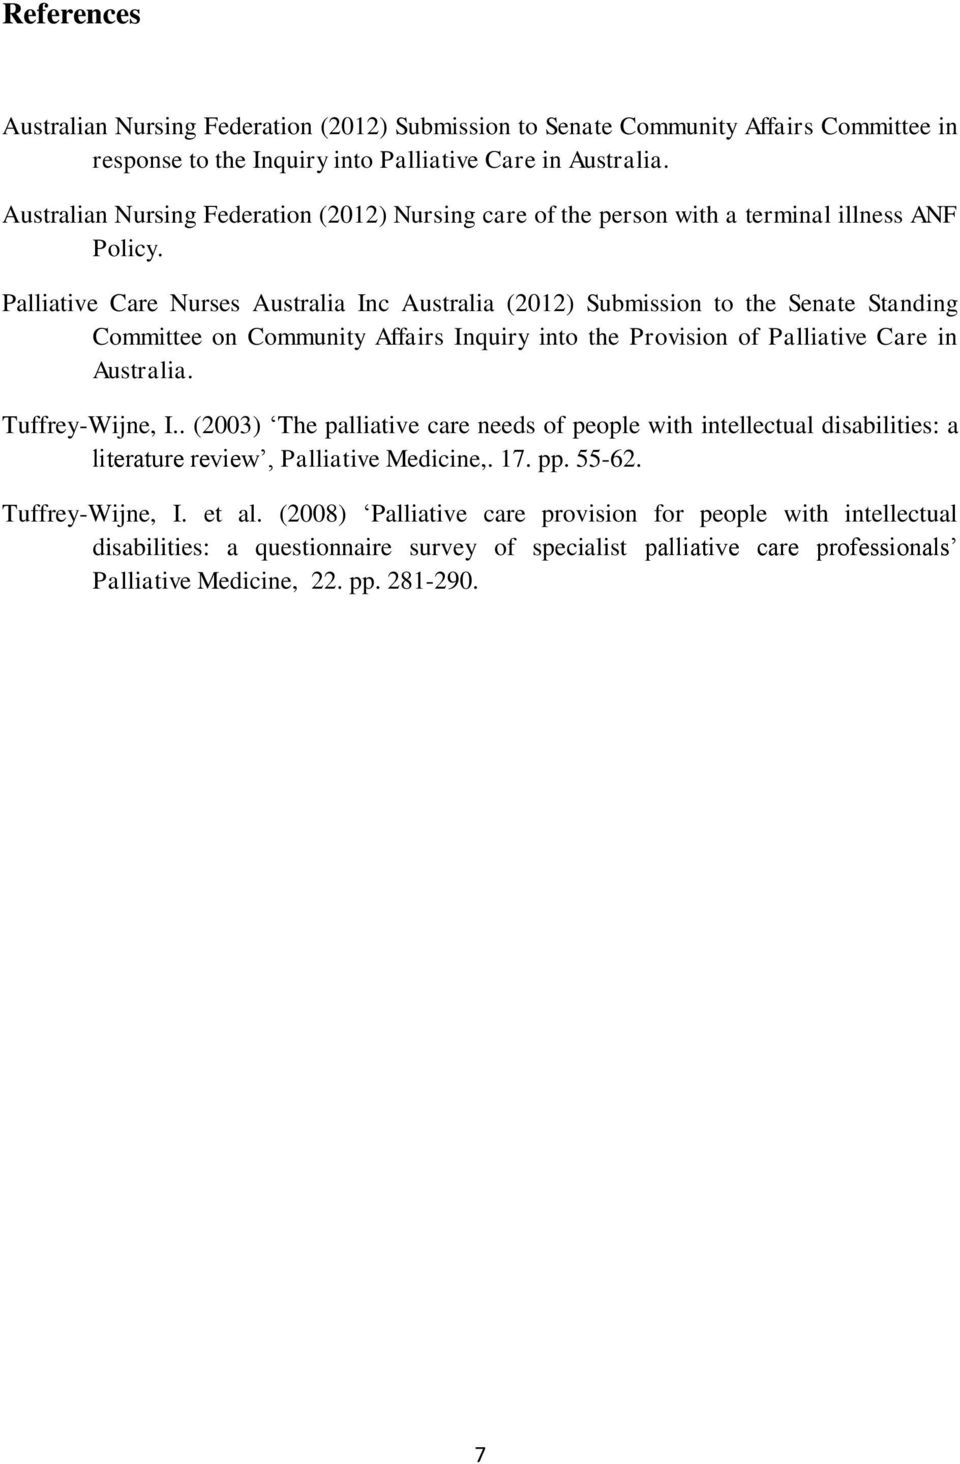 Palliative Care Nurses Australia Inc Australia (2012) Submission to the Senate Standing Committee on Community Affairs Inquiry into the Provision of Palliative Care in Australia. Tuffrey-Wijne, I.